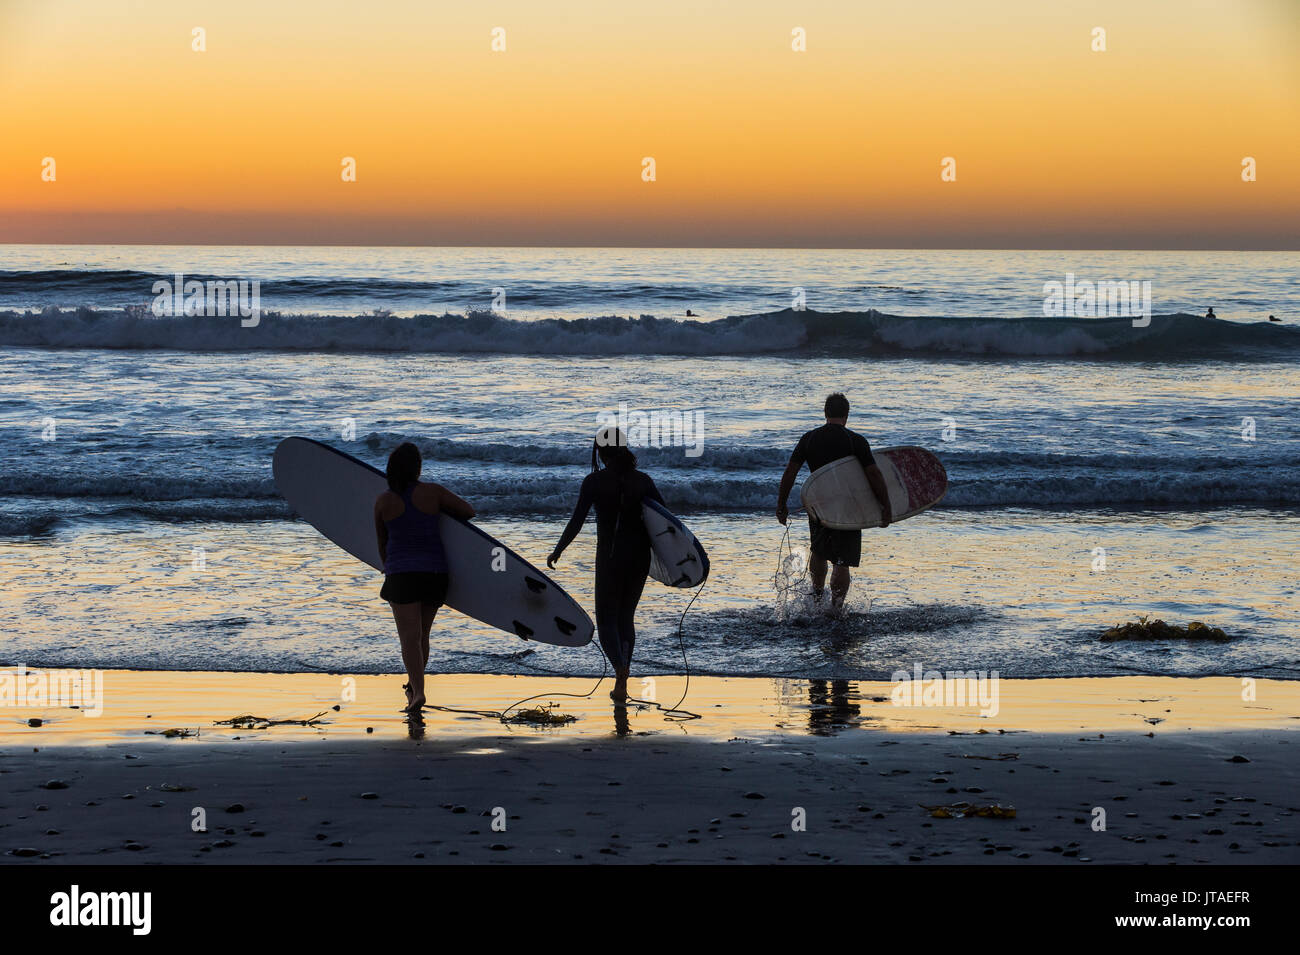 Surfers walking with their surfboards in the ocean at sunset, Del Mar, California, United States of America, North America - Stock Image